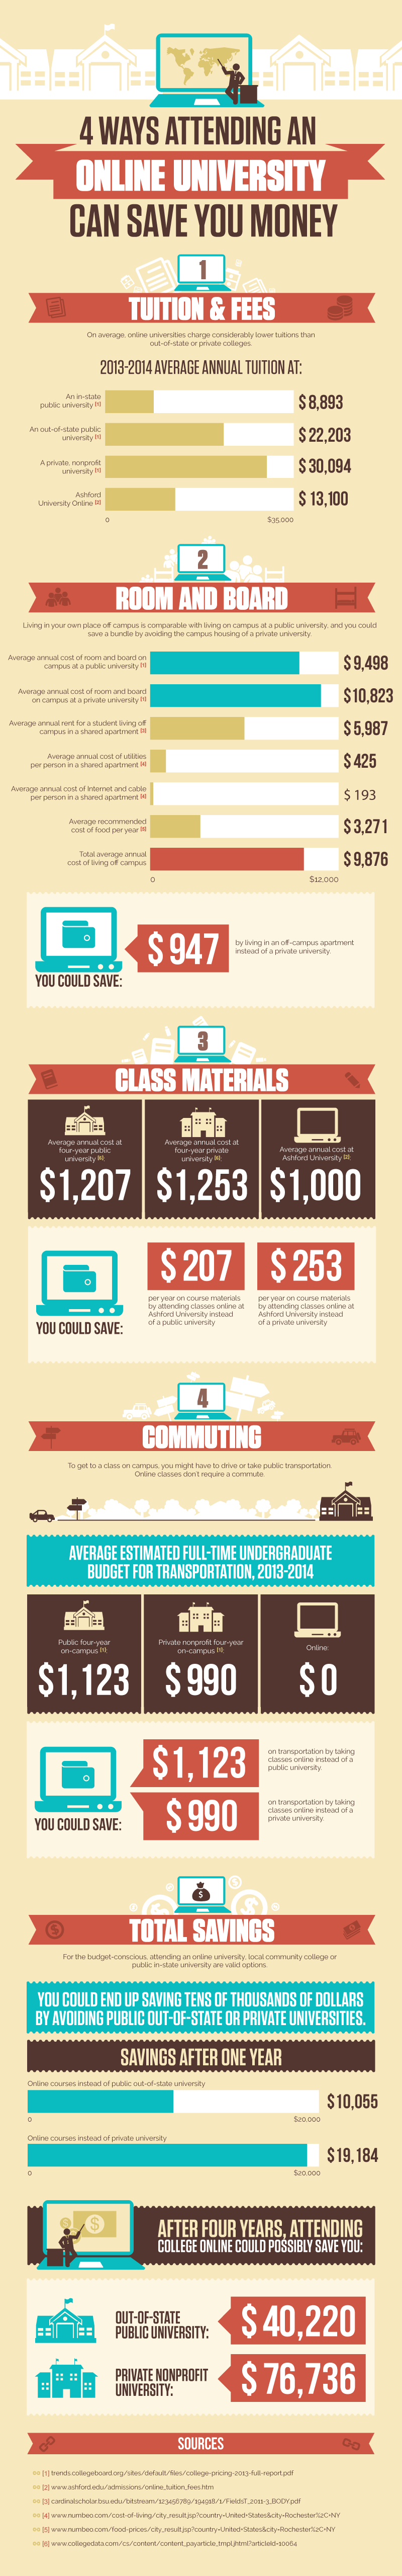 4 Ways an Online University Can Save You Money